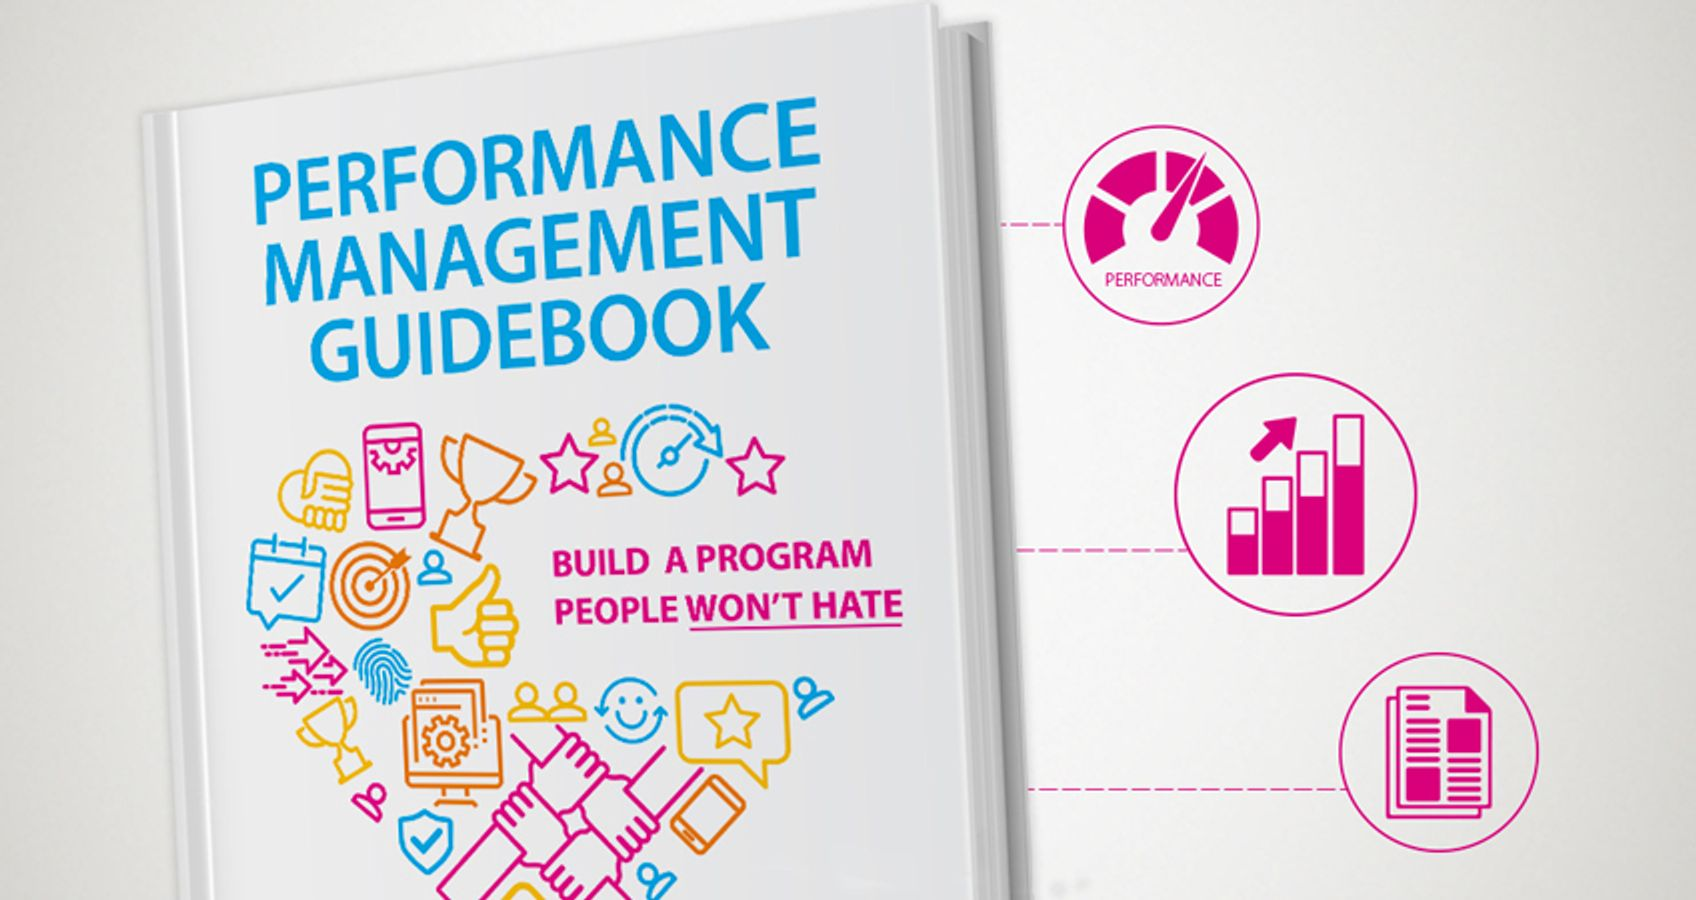 Performance Management Guidebook: Build A Program People Won't Hate